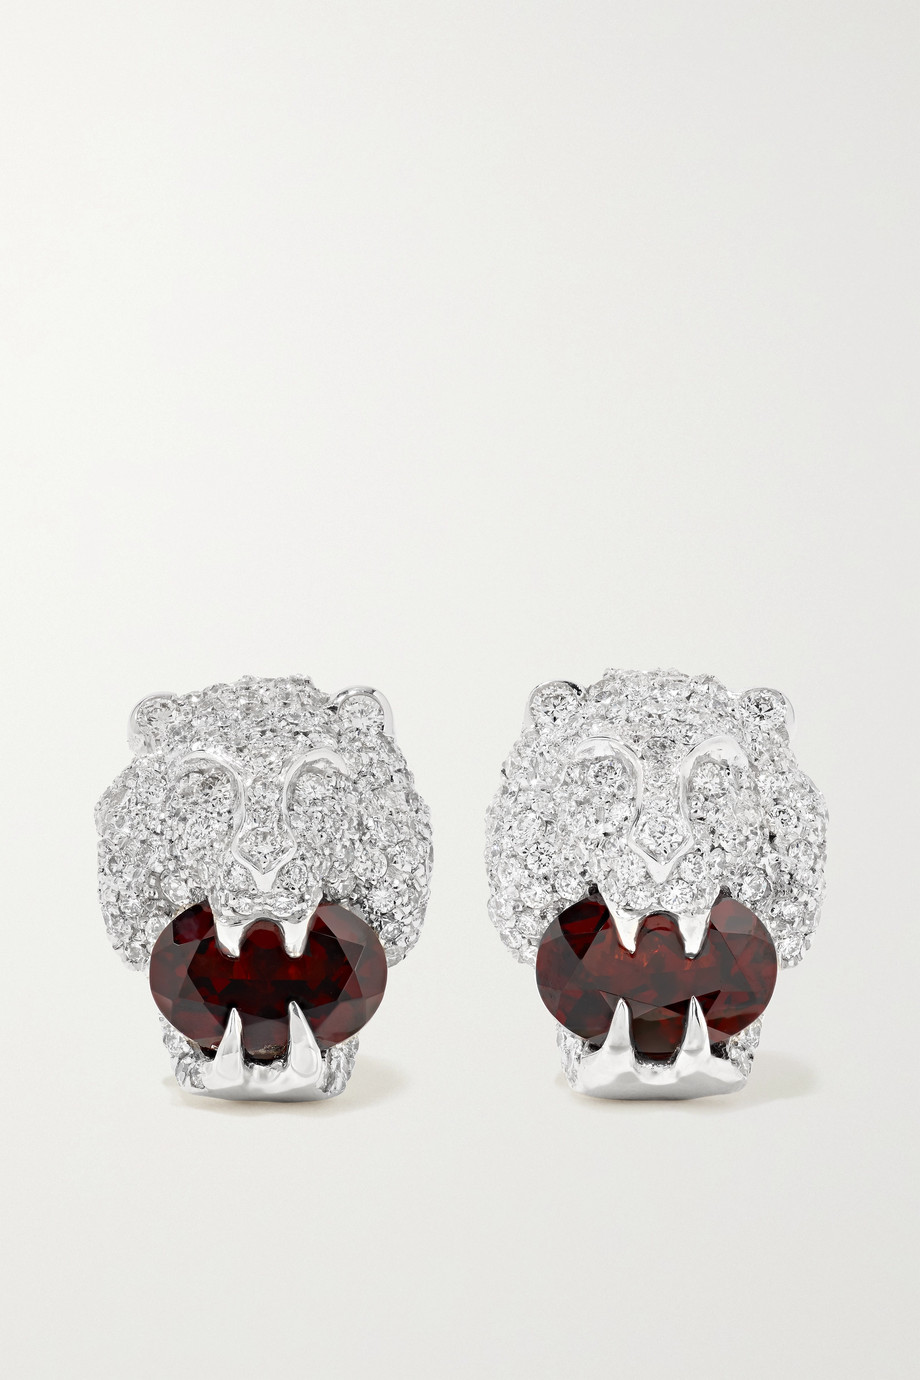 Gucci 18-karat white gold, diamond and garnet earrings